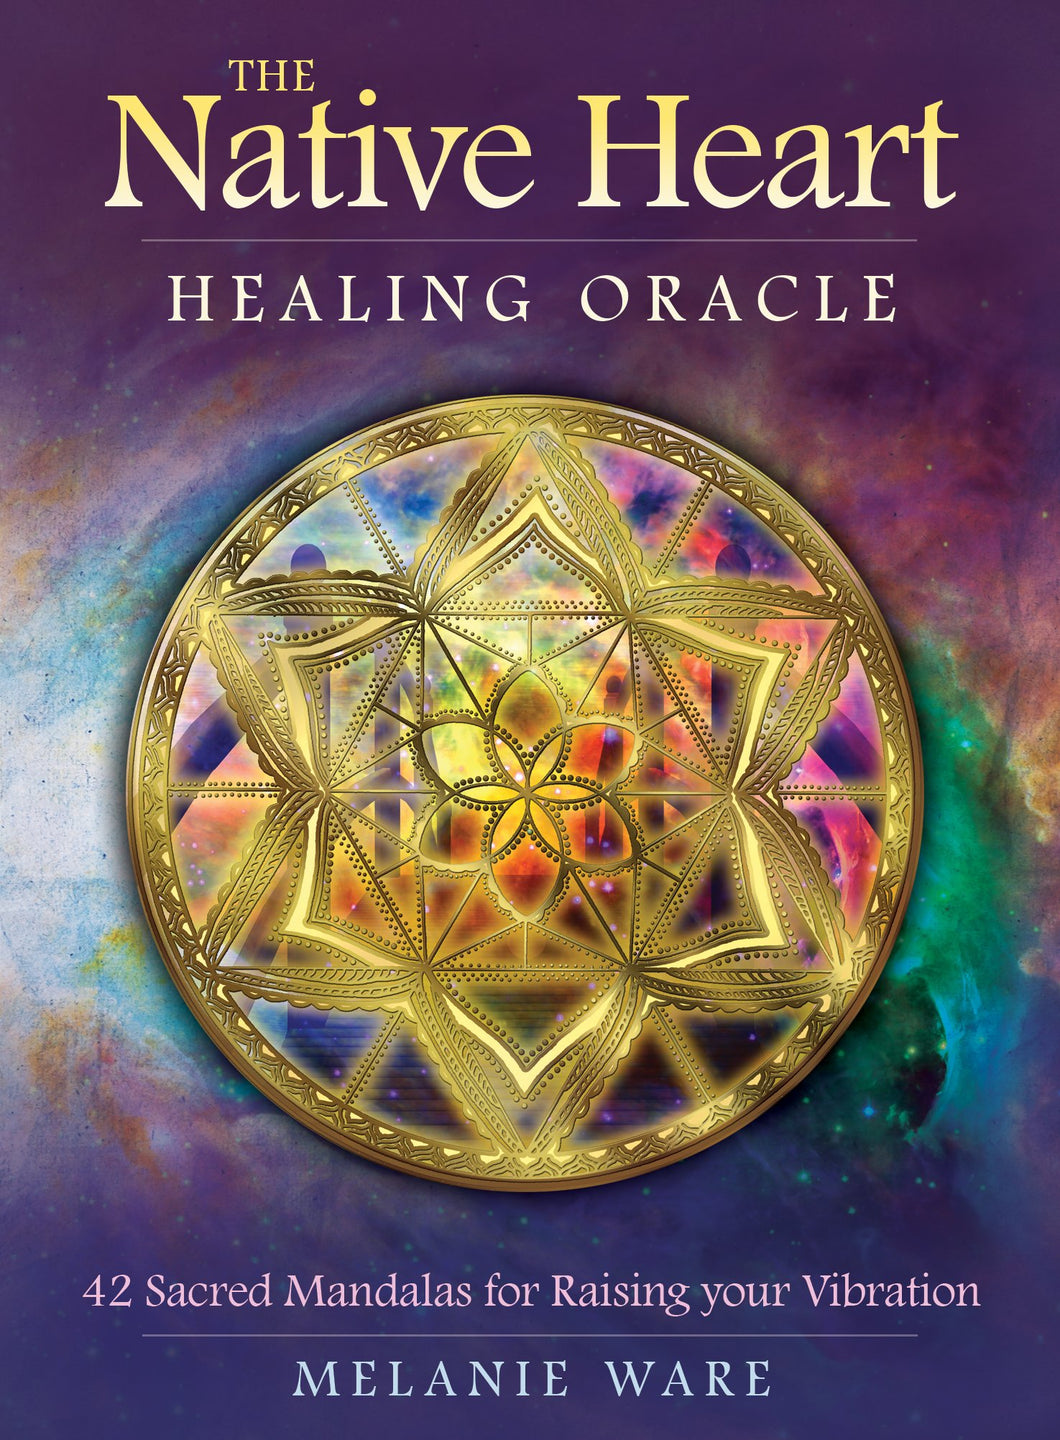 Native Heart Healing Oracle [Melanie Ware & Jane Marin]